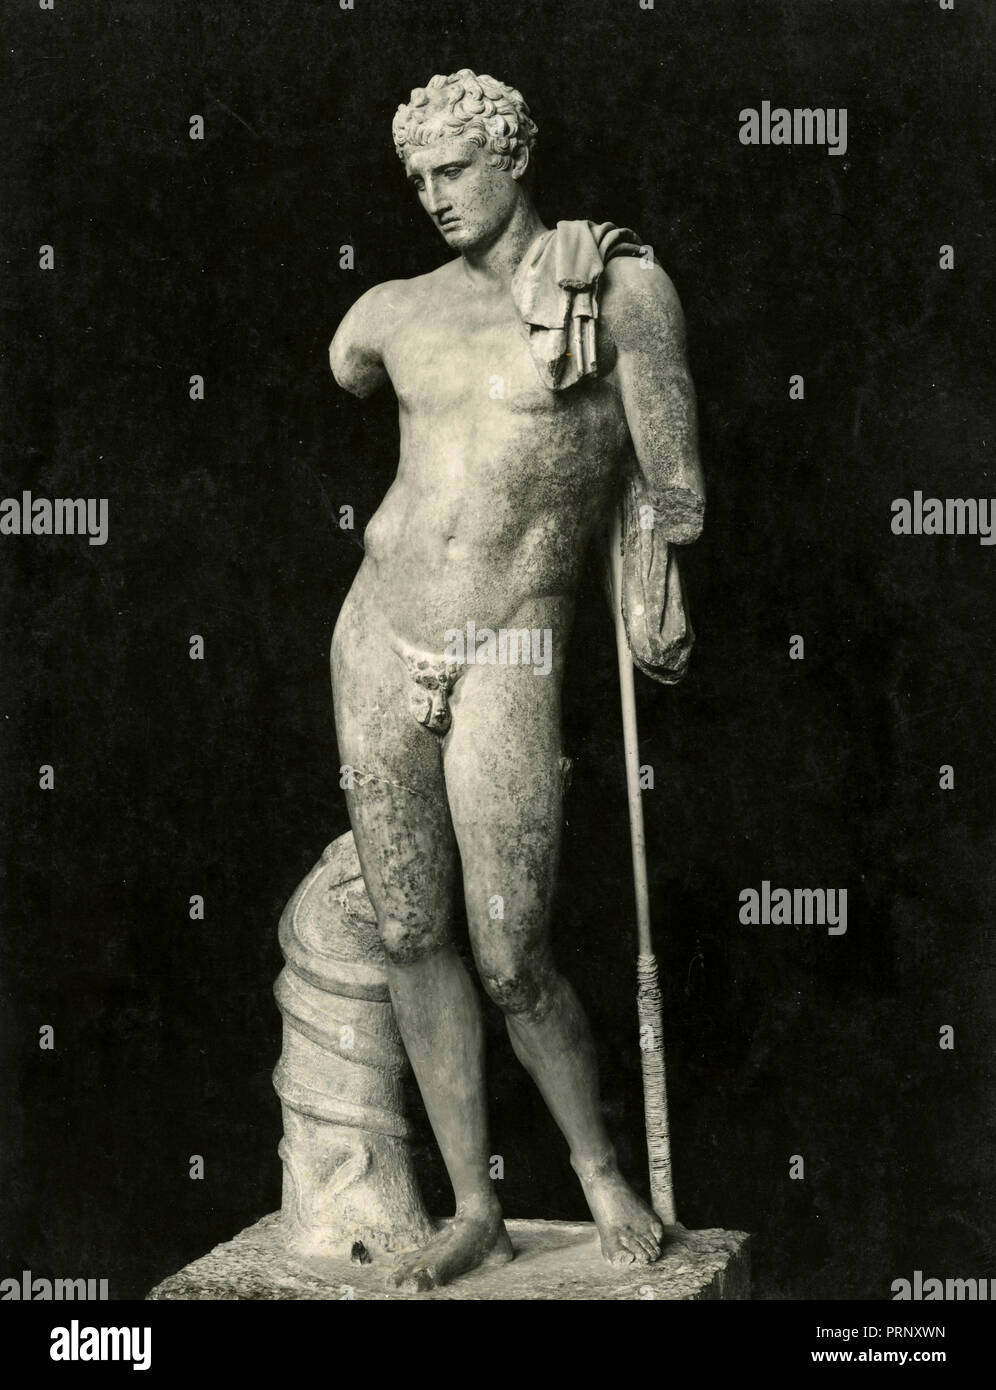 Hermes of Andros, marble statue, Greece 1930s - Stock Image